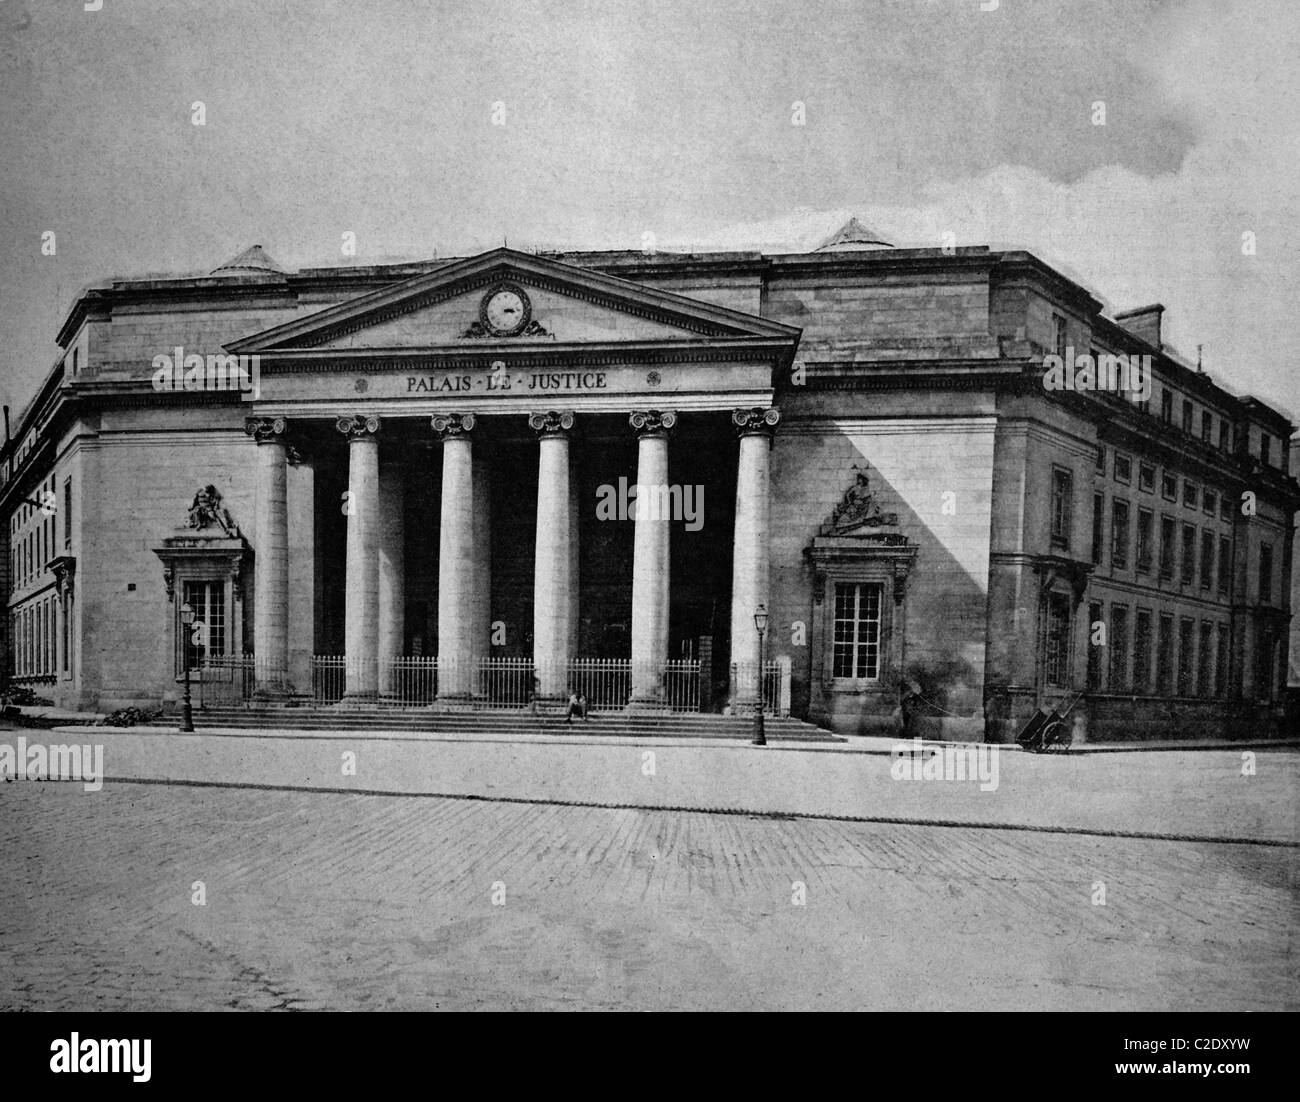 One of the first autotypes of the Palais de Justice in Caen, France, historical photograph, 1884 - Stock Image